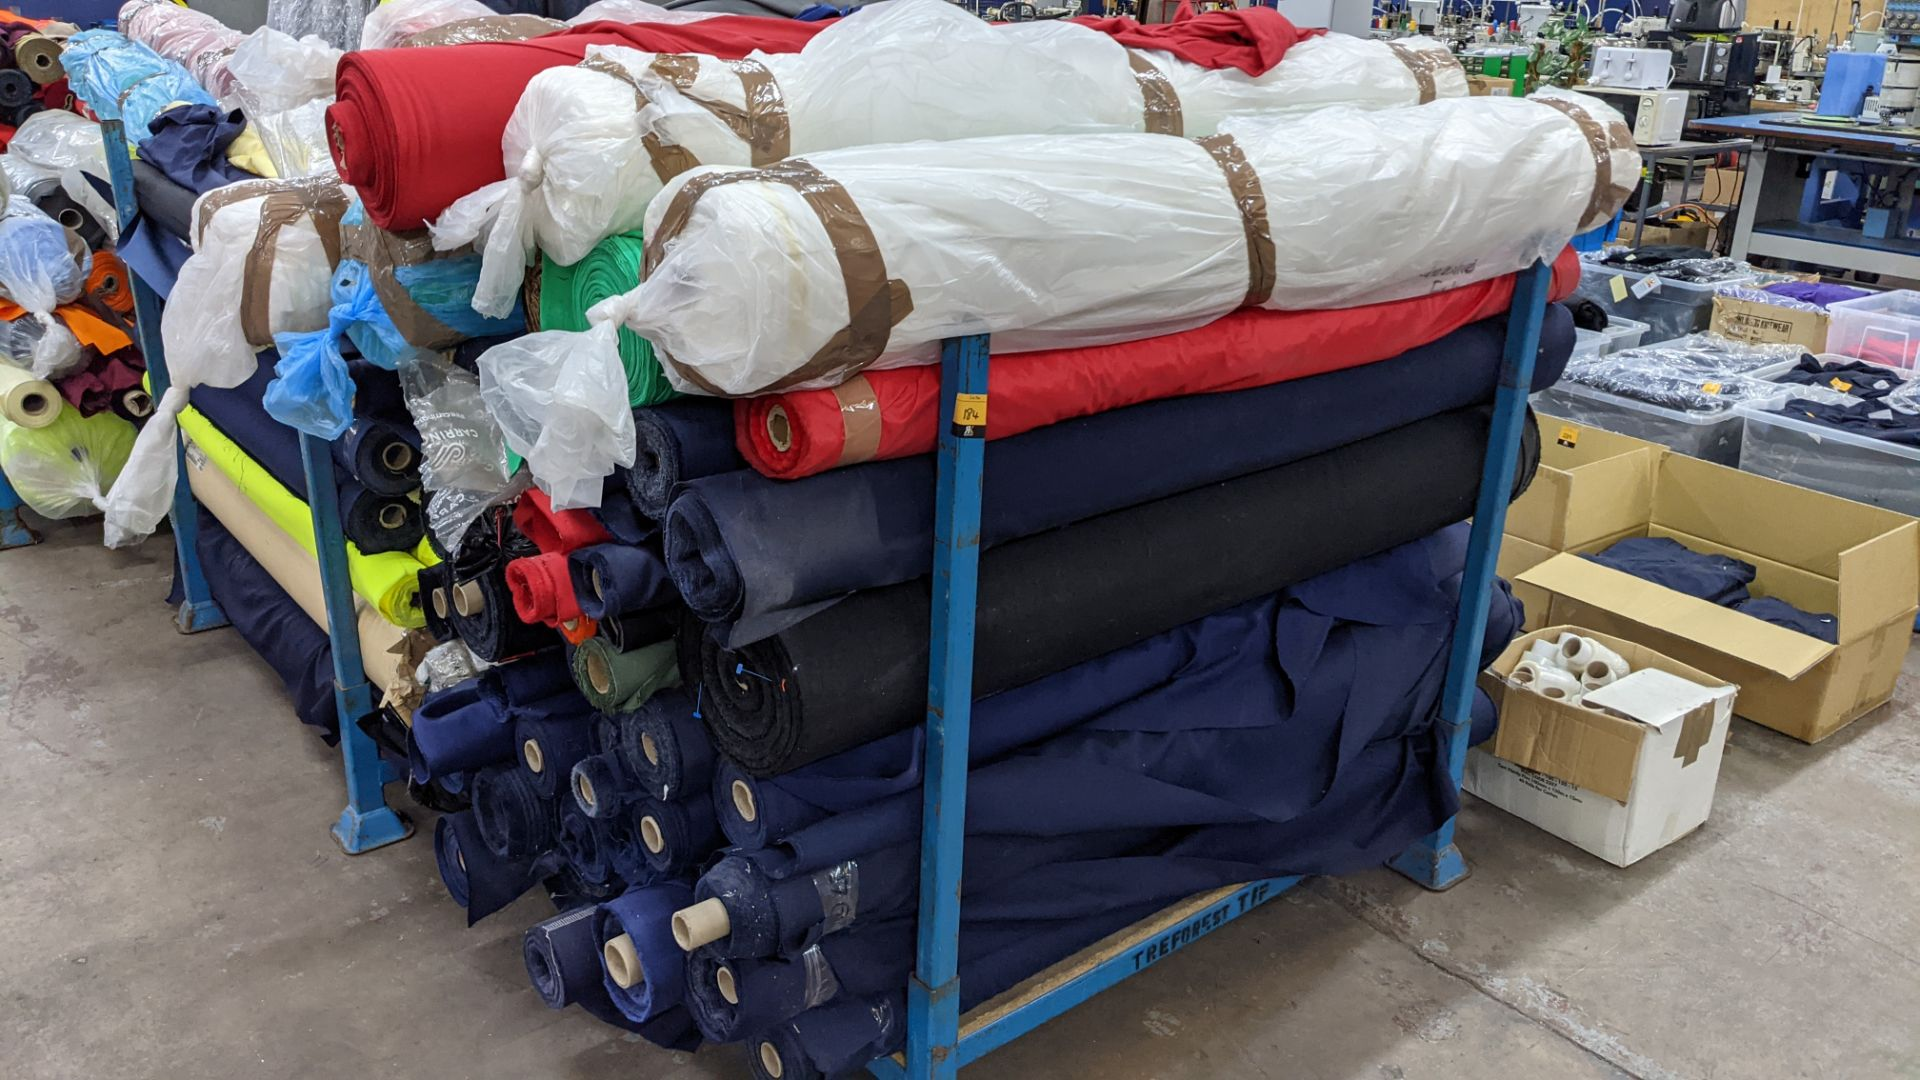 The contents of a large stillage of fabric. Please note the stillage is excluded and cannot be remo - Image 2 of 8